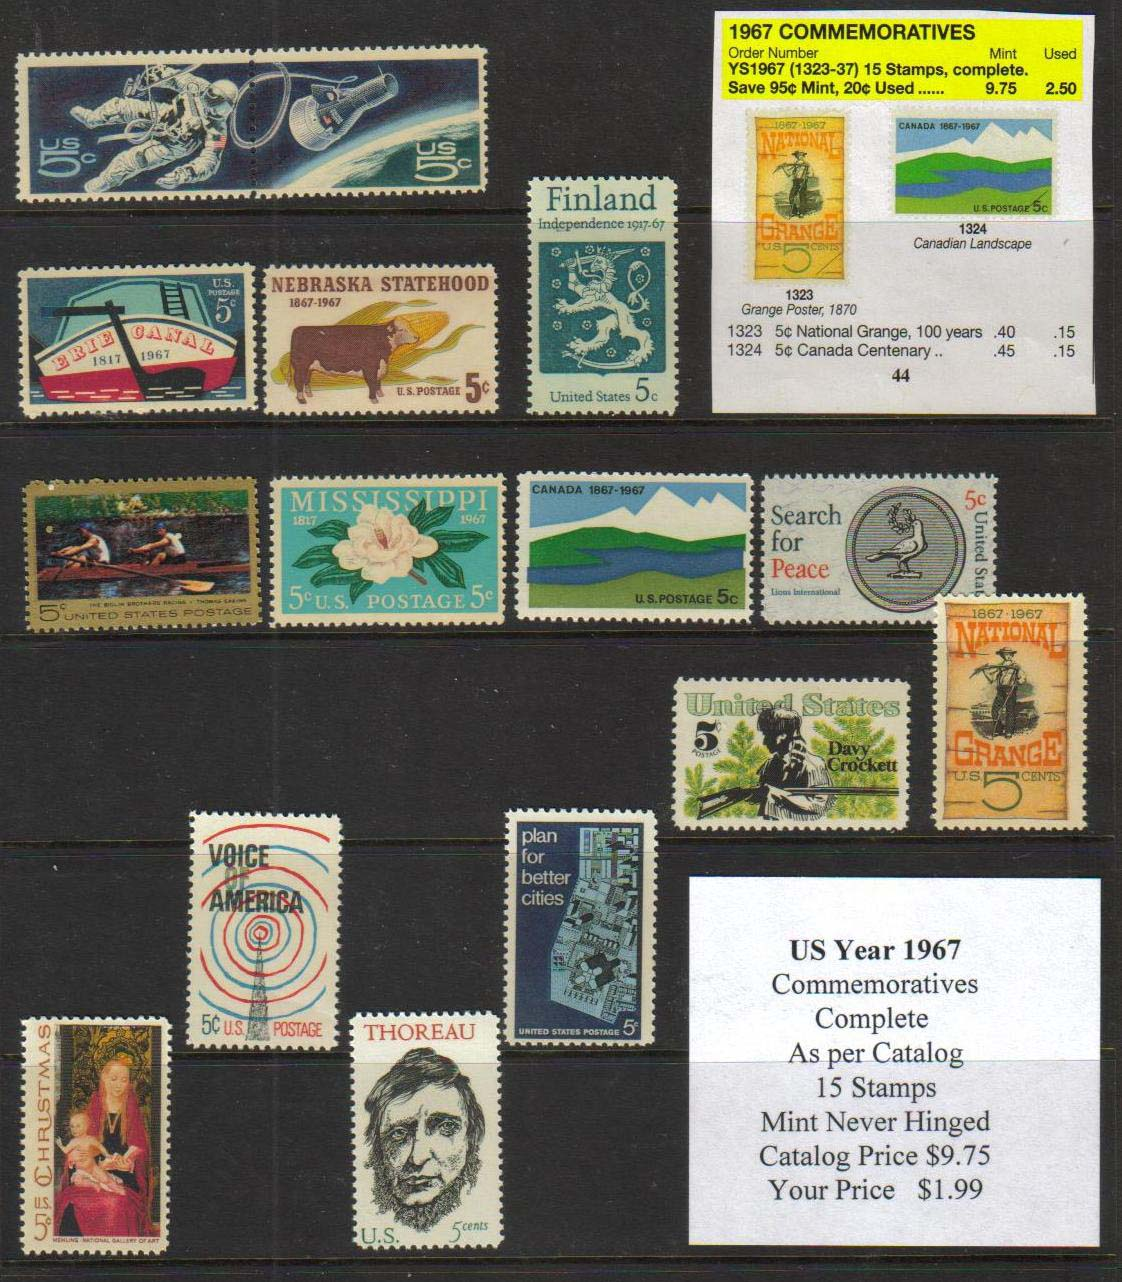 1967 COMMEMORATIVES, 15 STAMPS